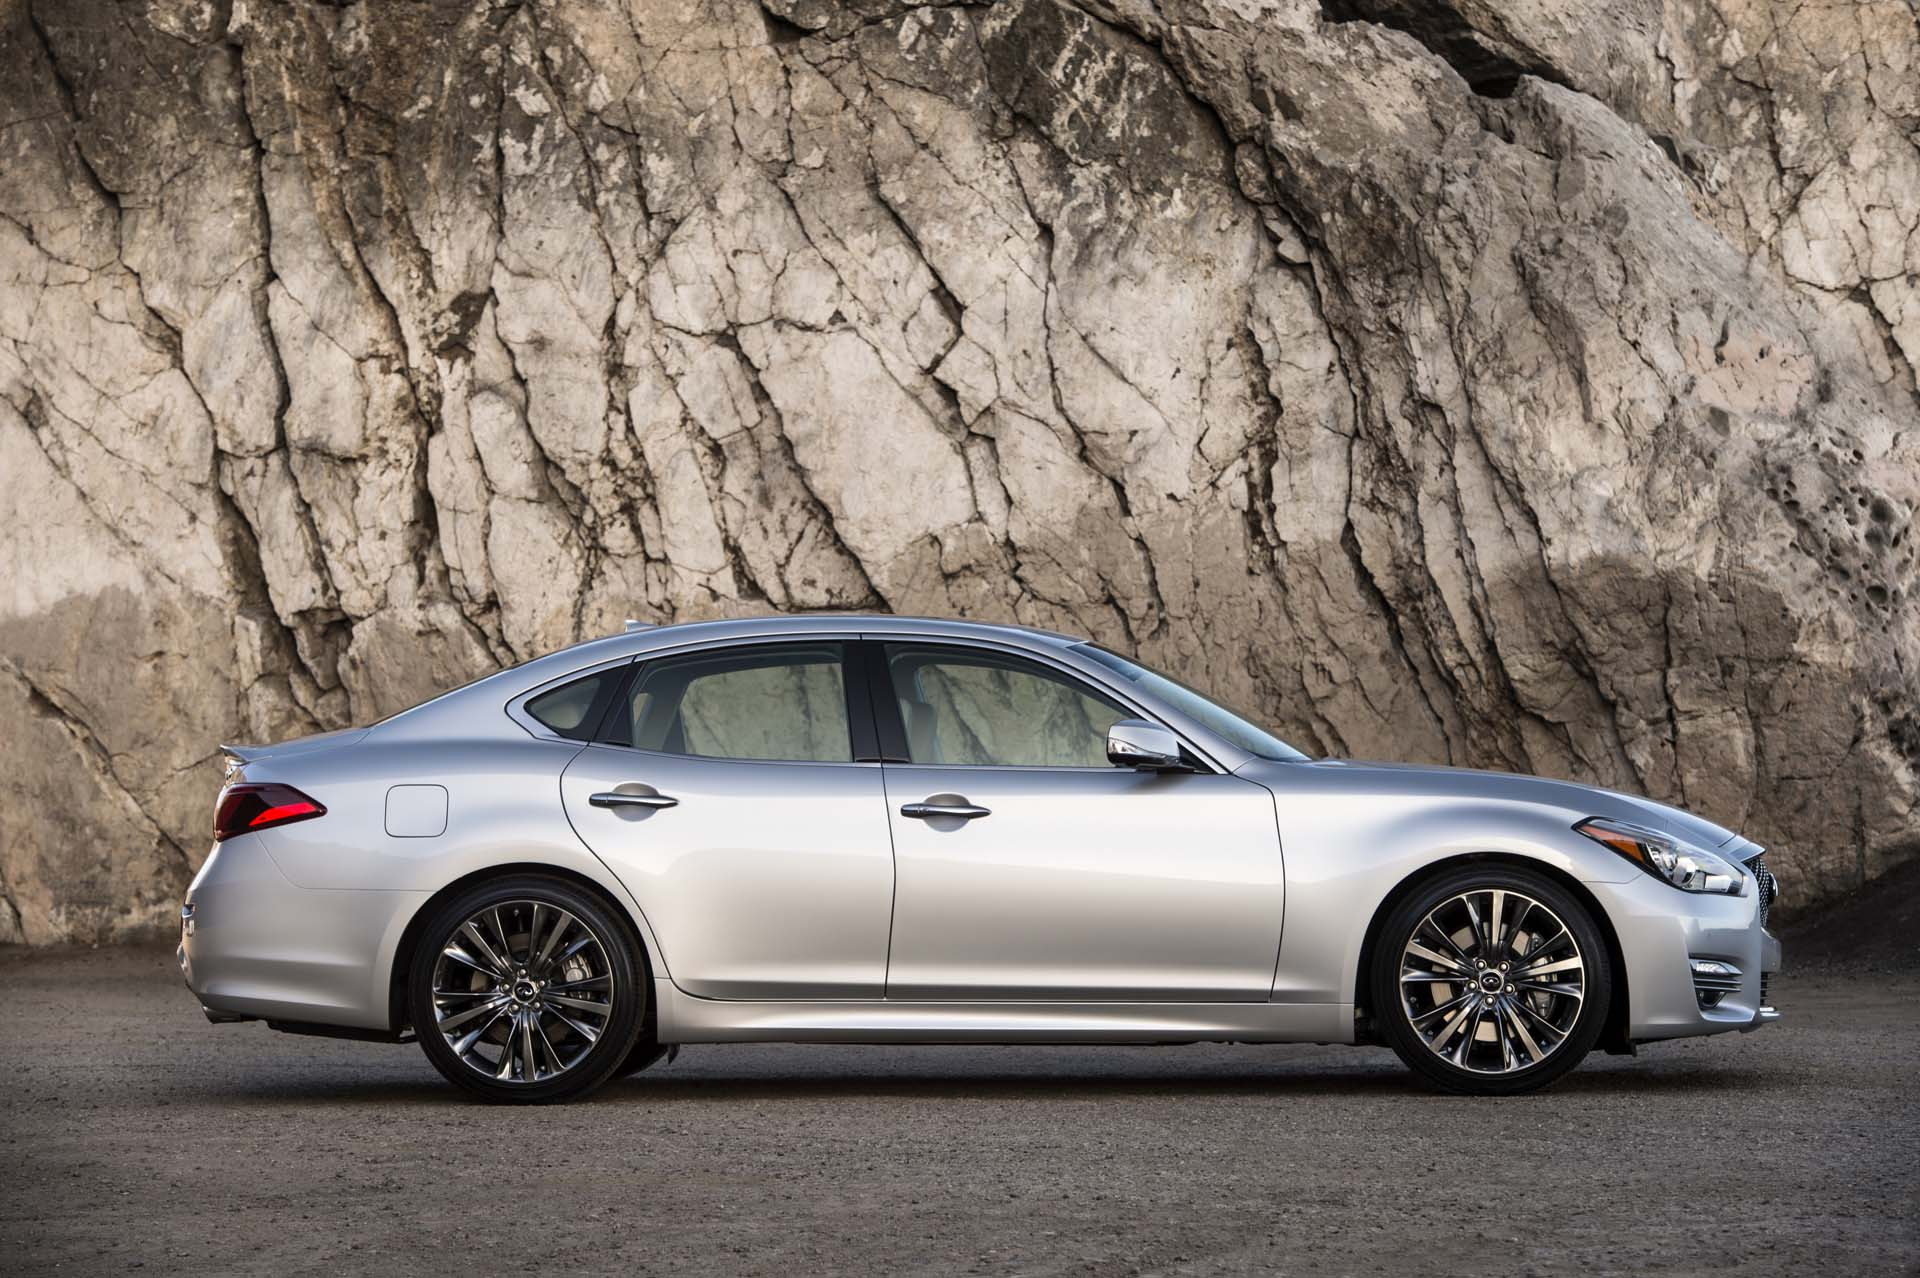 2017 infiniti q70 features review the car connection. Black Bedroom Furniture Sets. Home Design Ideas